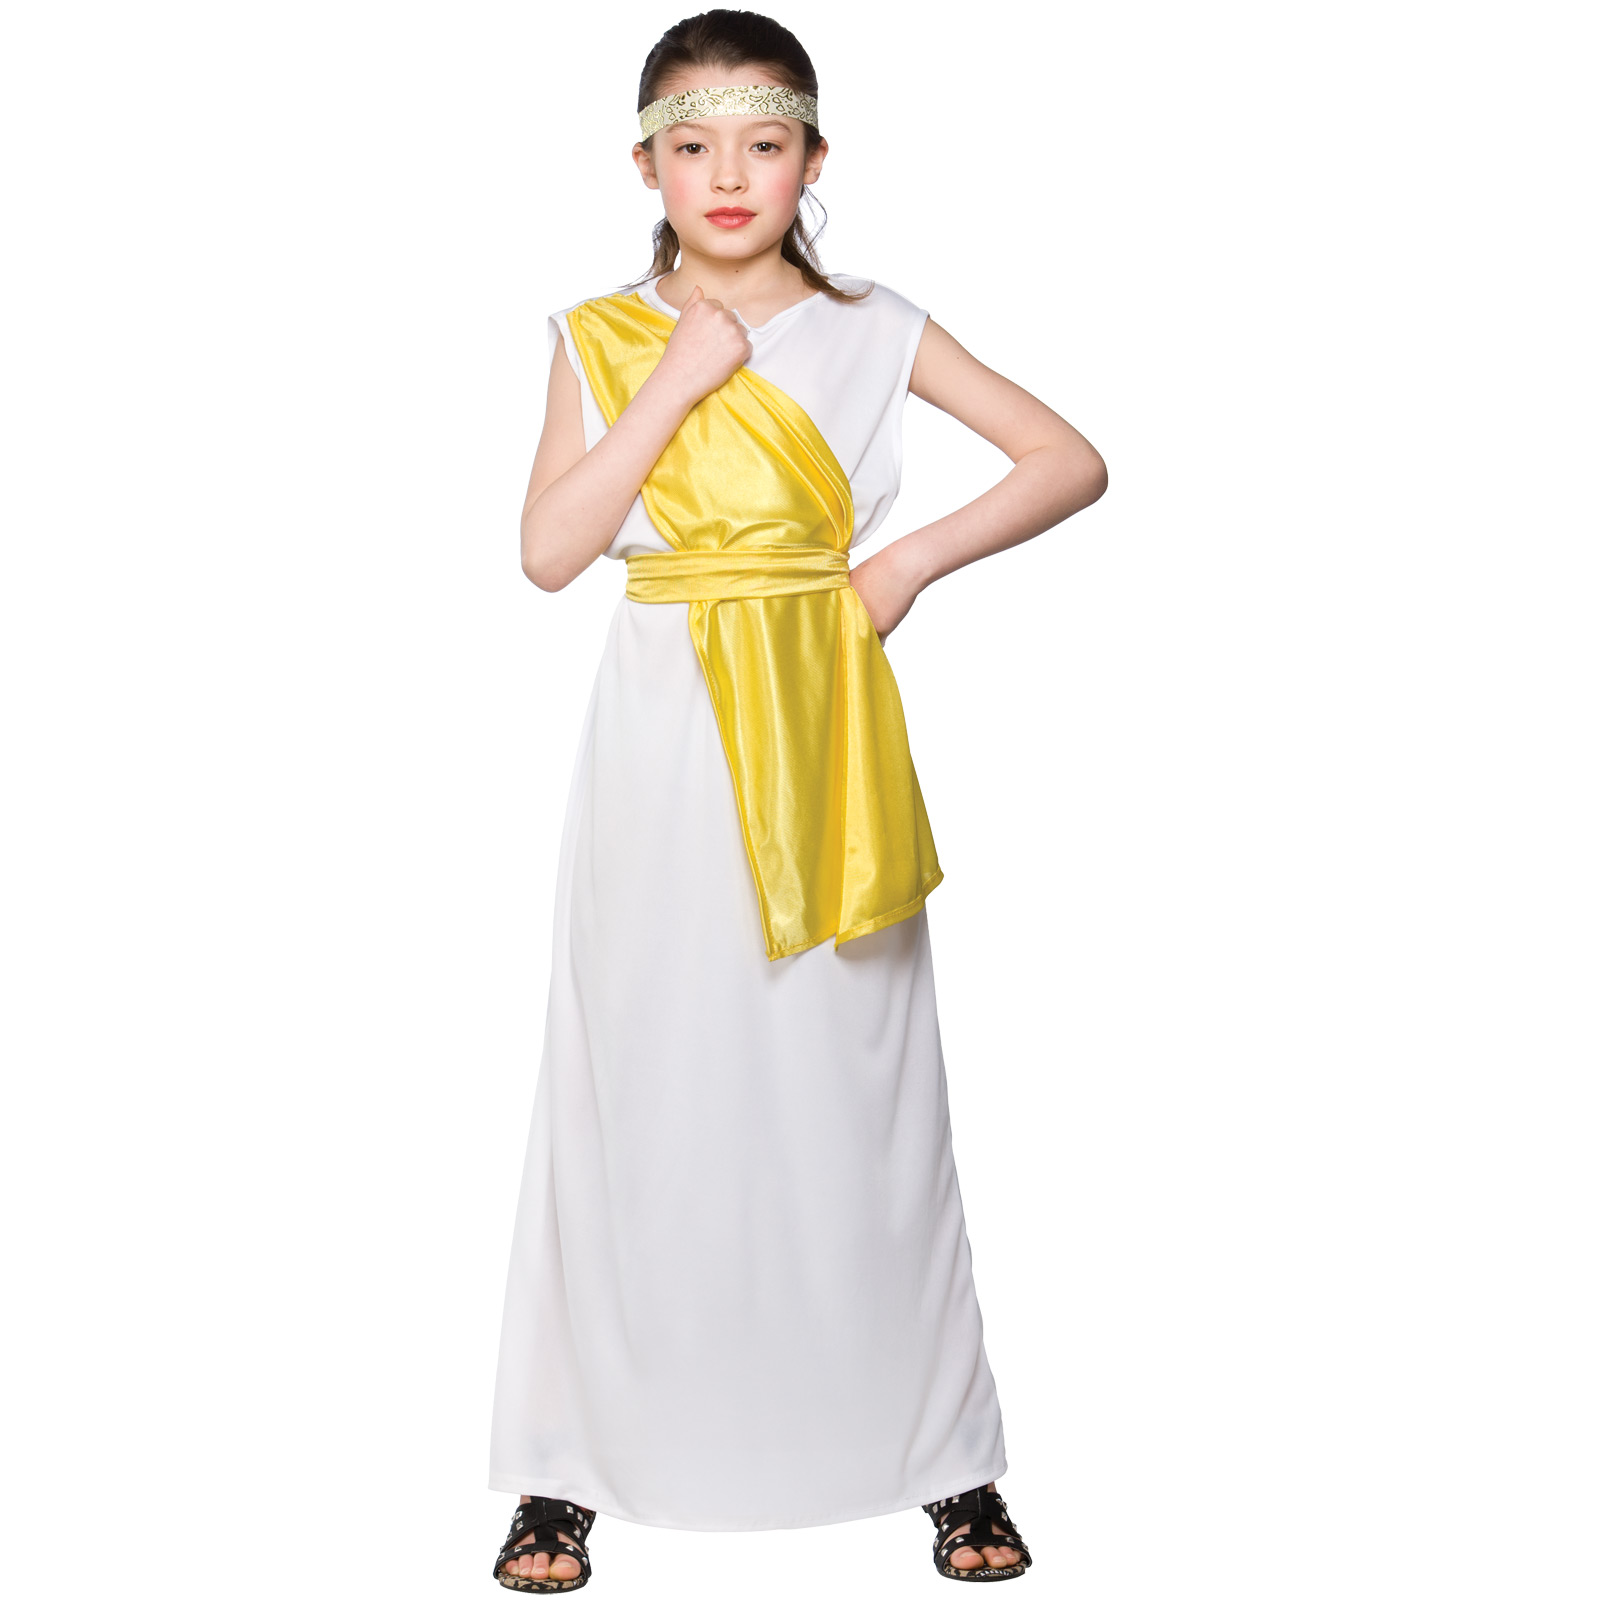 Ancient Greek Clothing: Girls Ancient Greek Girl Costume Fancy Dress Up Party